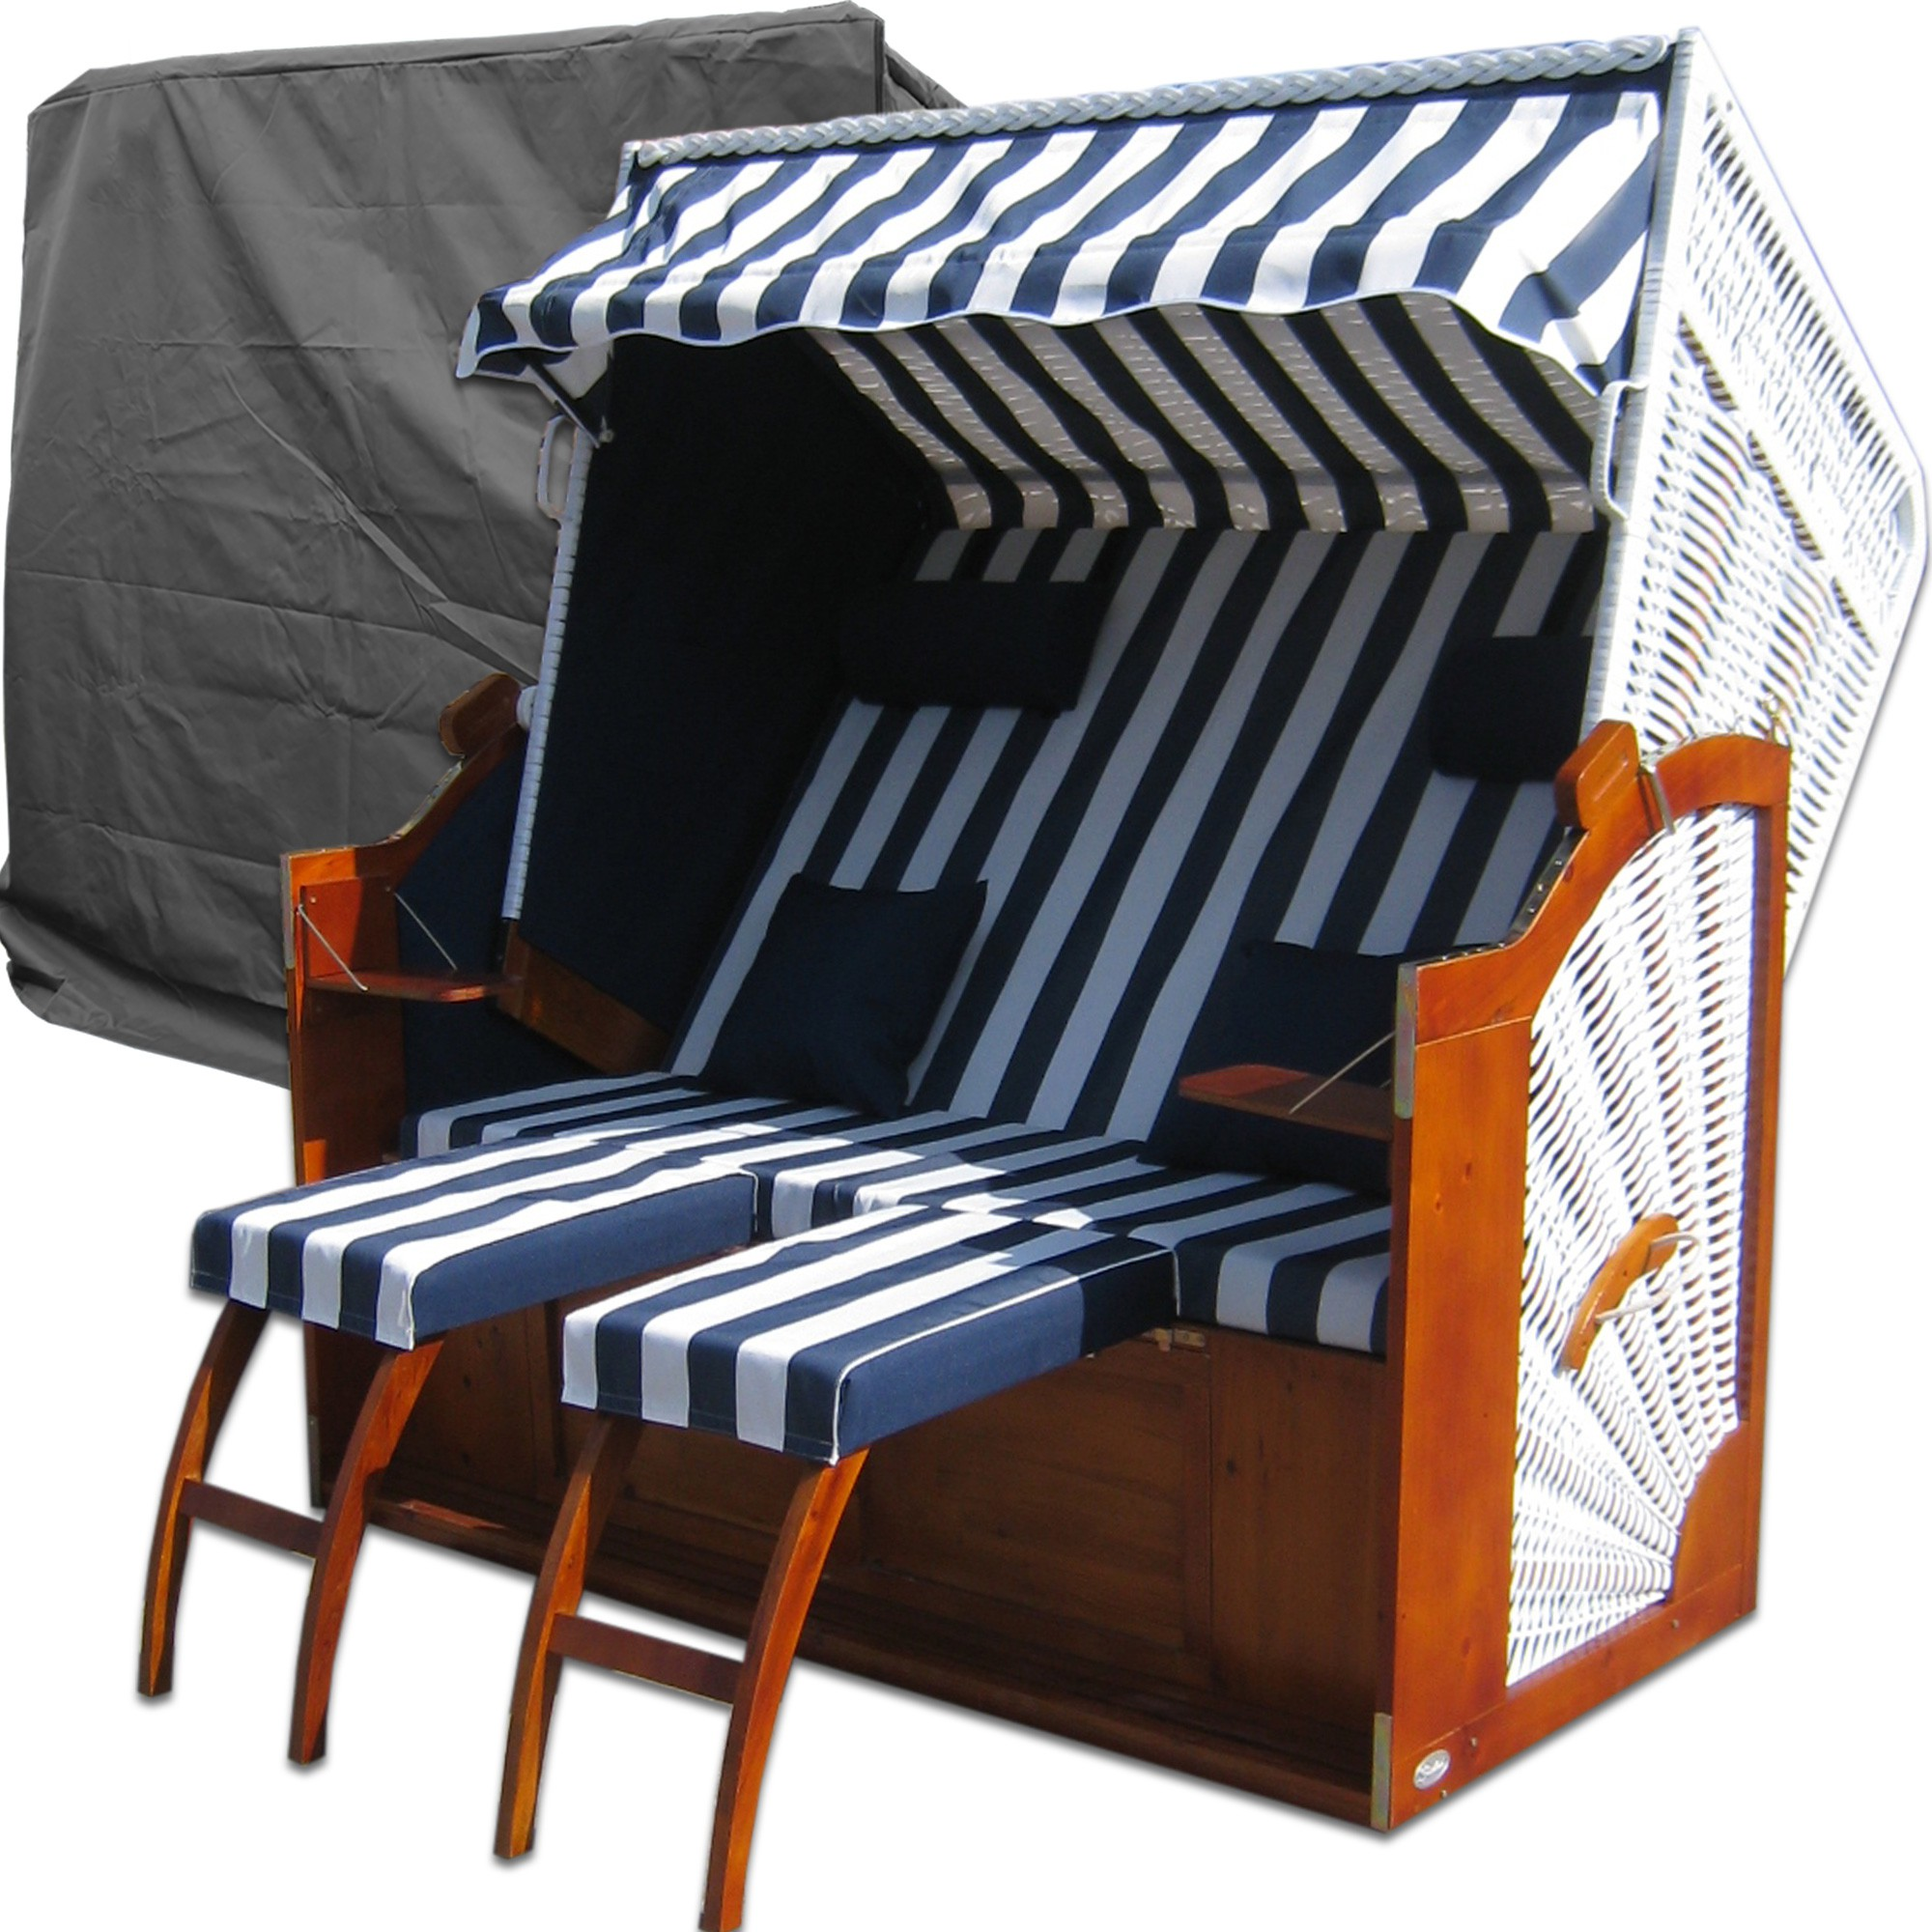 strandkorb sylt g nstig strandkorb xxl kaufen. Black Bedroom Furniture Sets. Home Design Ideas